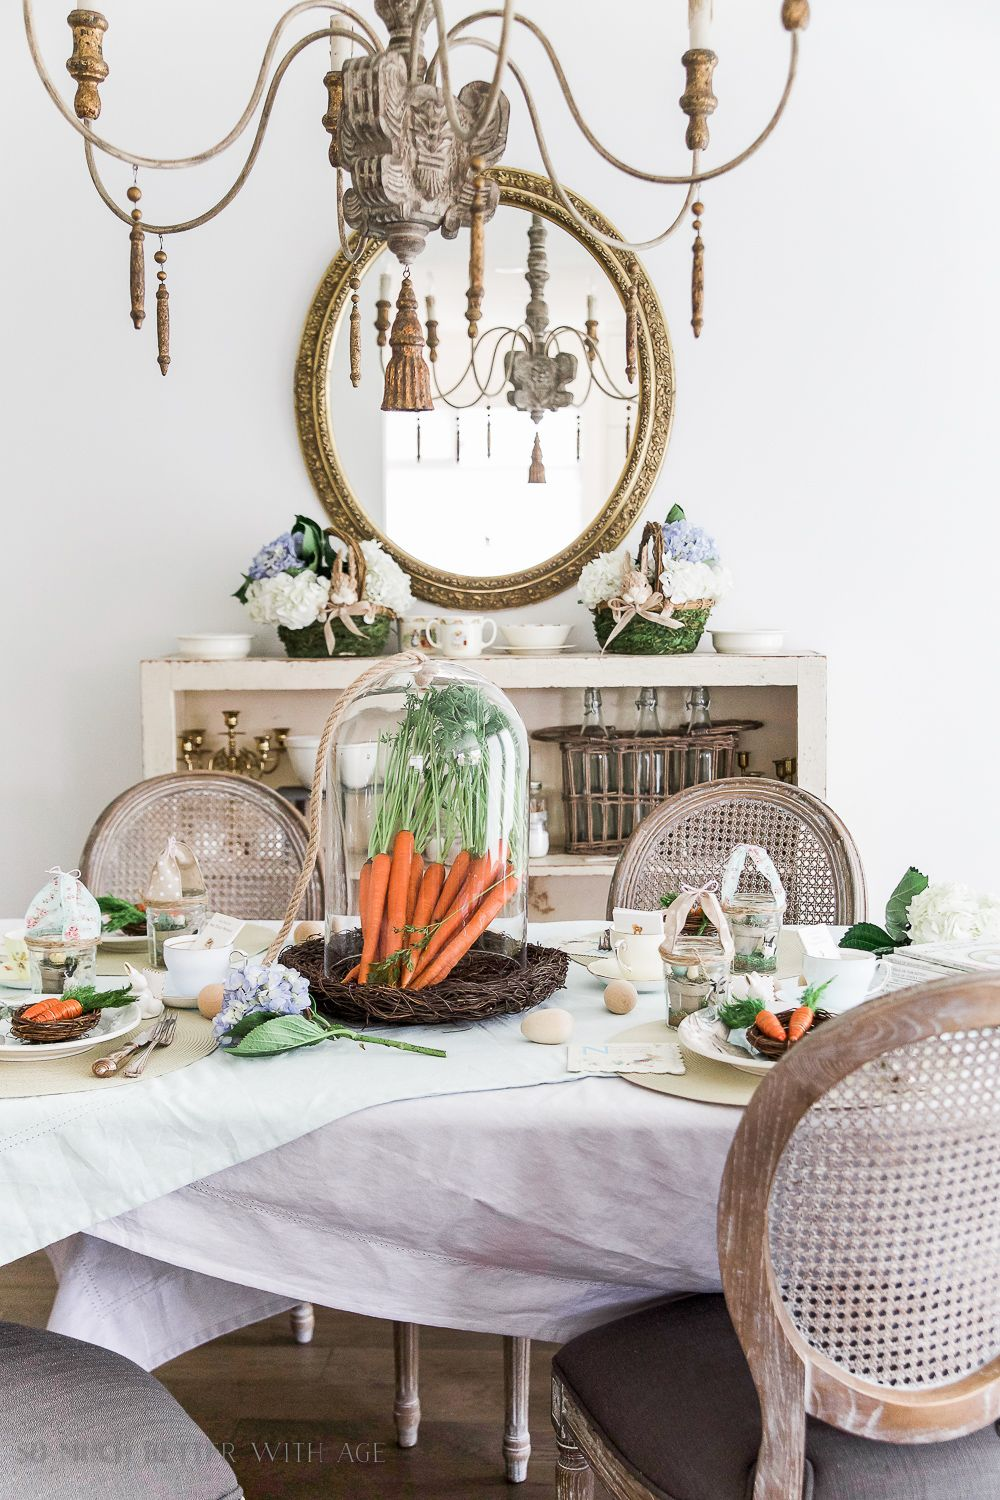 DIY Easter Table Decorations - Table Decor Ideas for Easter ... on french country kitchen theme, ideas for kitchen design, ideas for kitchen decorating, ideas for kitchen art, ideas for kitchen wallpaper, ideas for kitchen organization, ideas for kitchen color, ideas for kitchen space, ideas for kitchen lighting, decoration for kitchen theme,